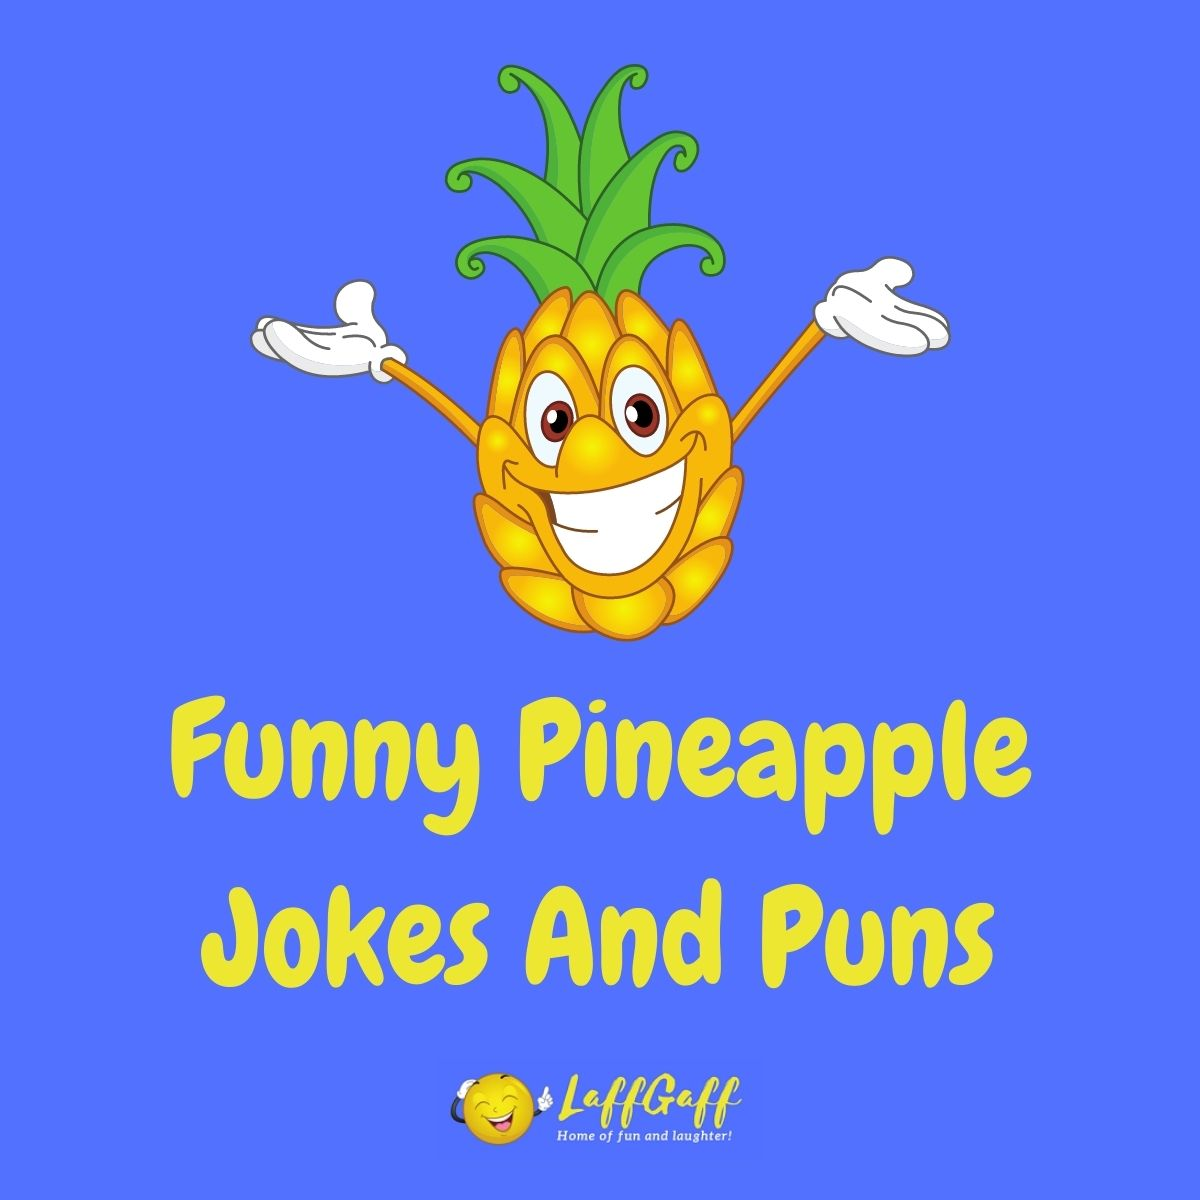 Featured image for a page of funny pineapple jokes and puns.